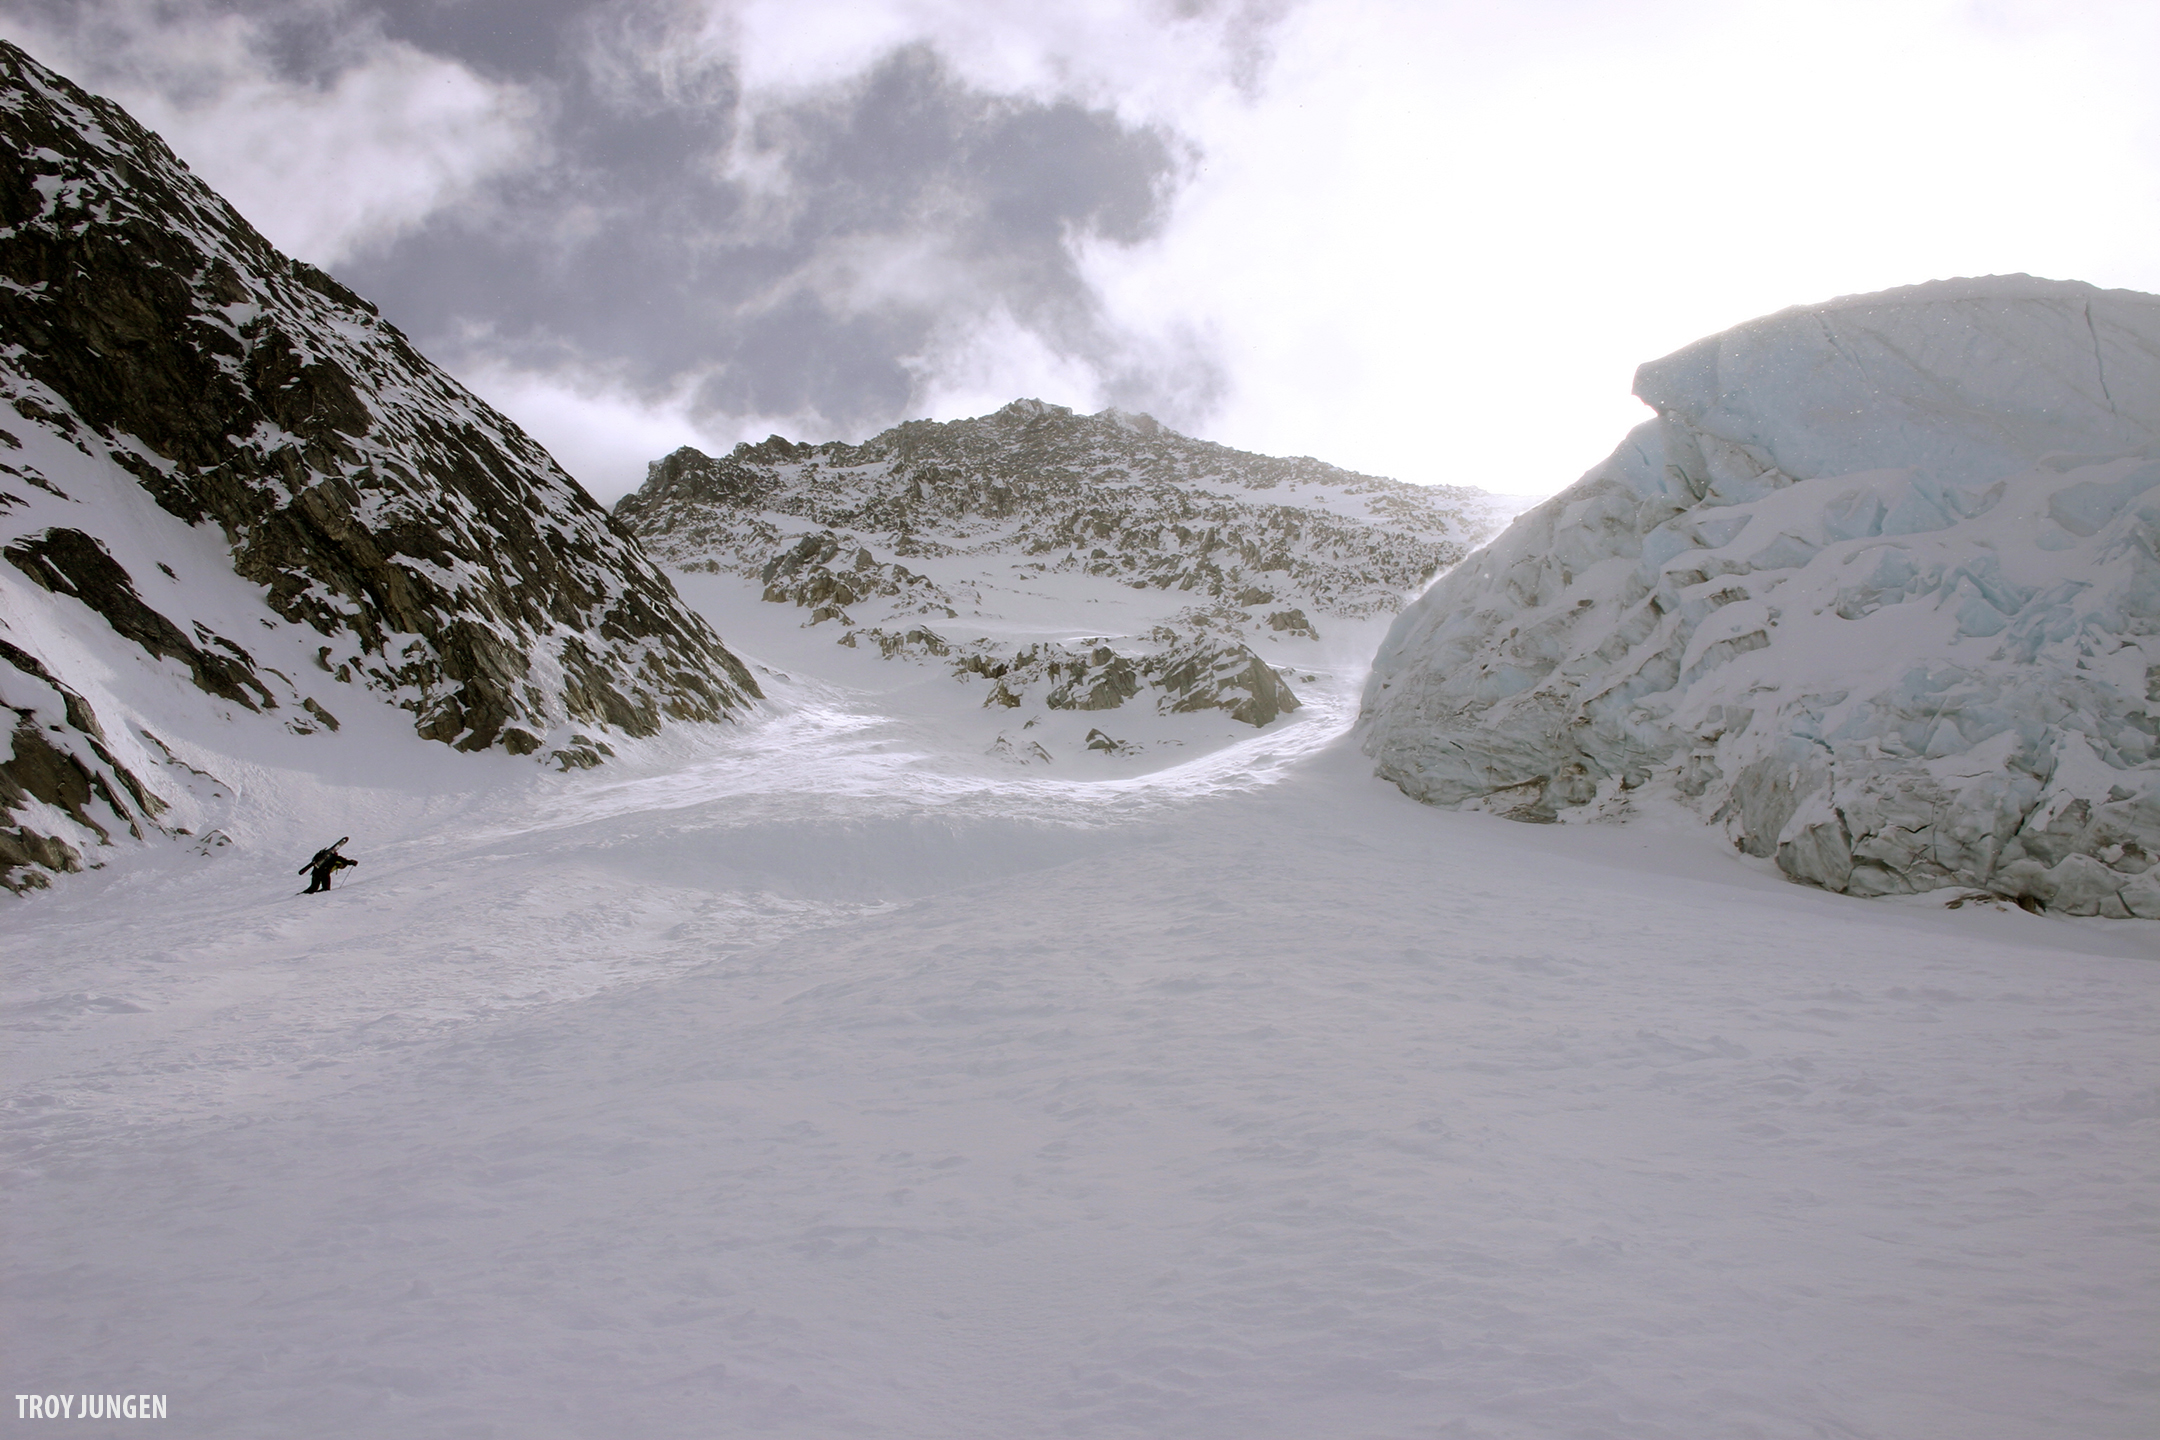 Steep skinning quickly transitioned to bootpacking on the NW Glacier. That's the summit pyramid of Feuz above the hiker.